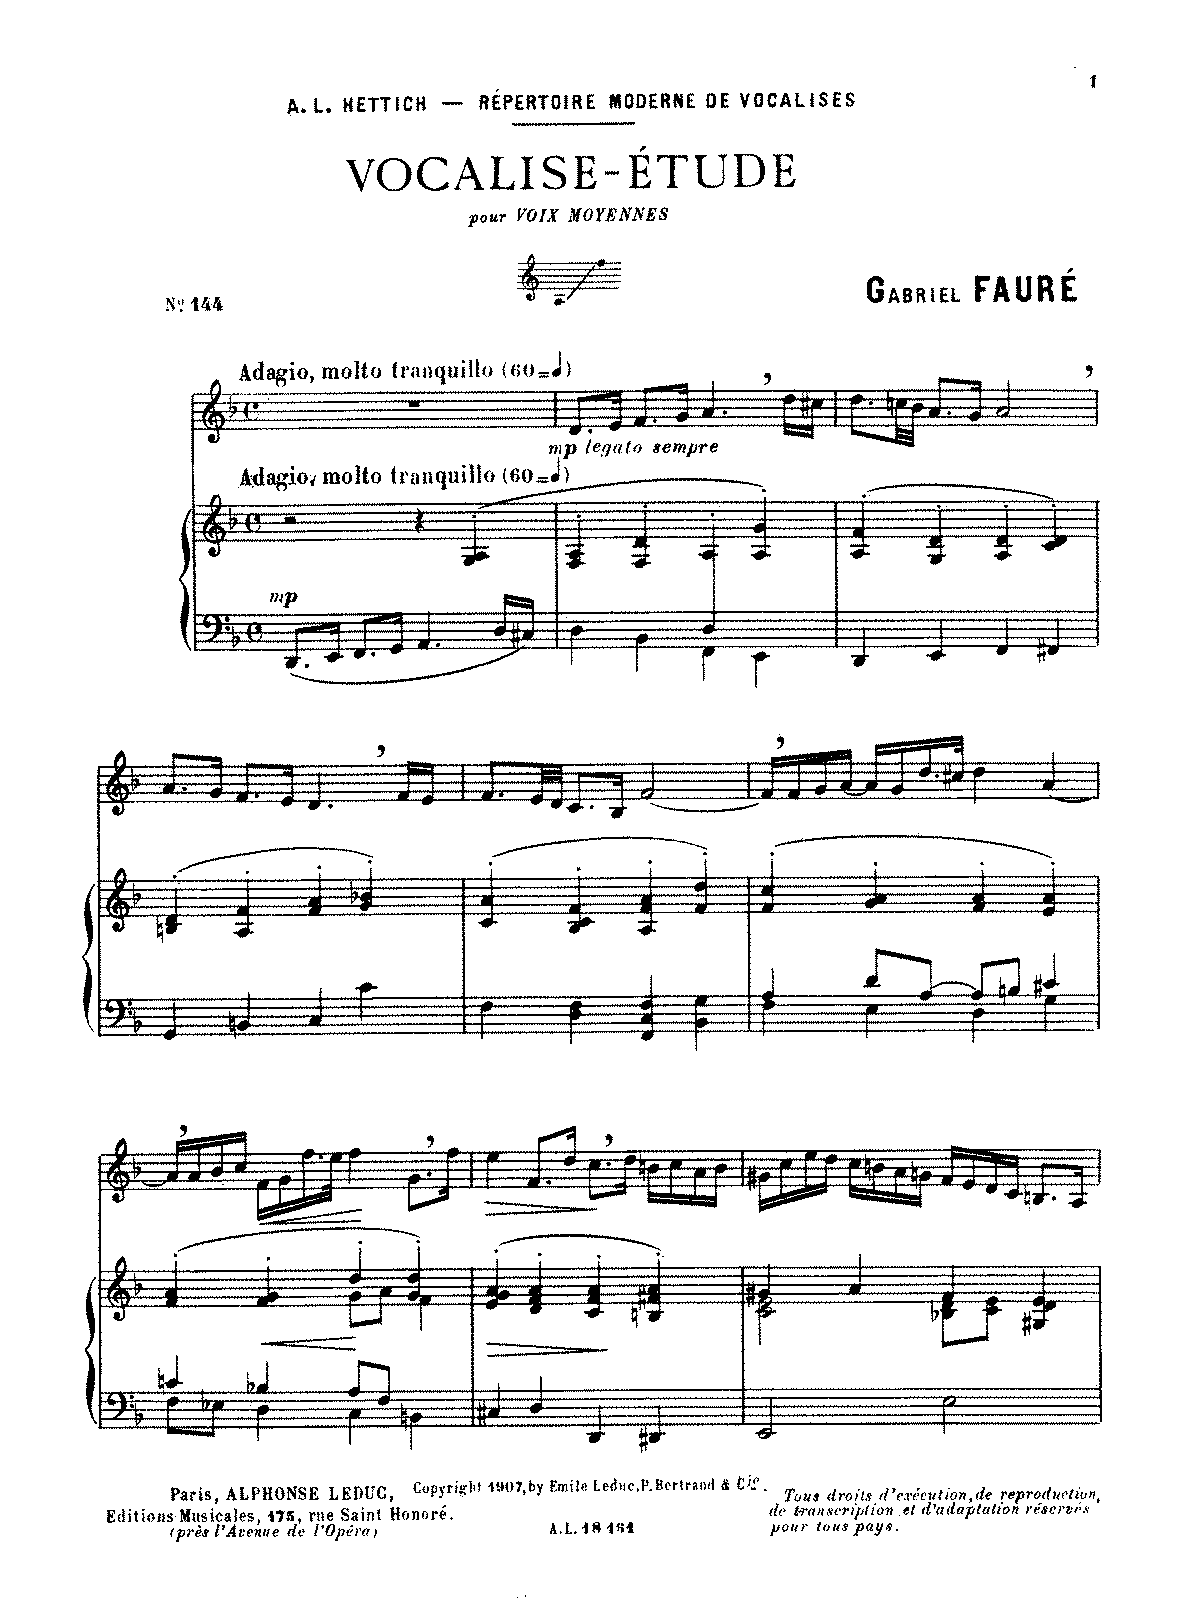 PMLP55596-Fauré - Vocalise etude d min (voice and piano).pdf